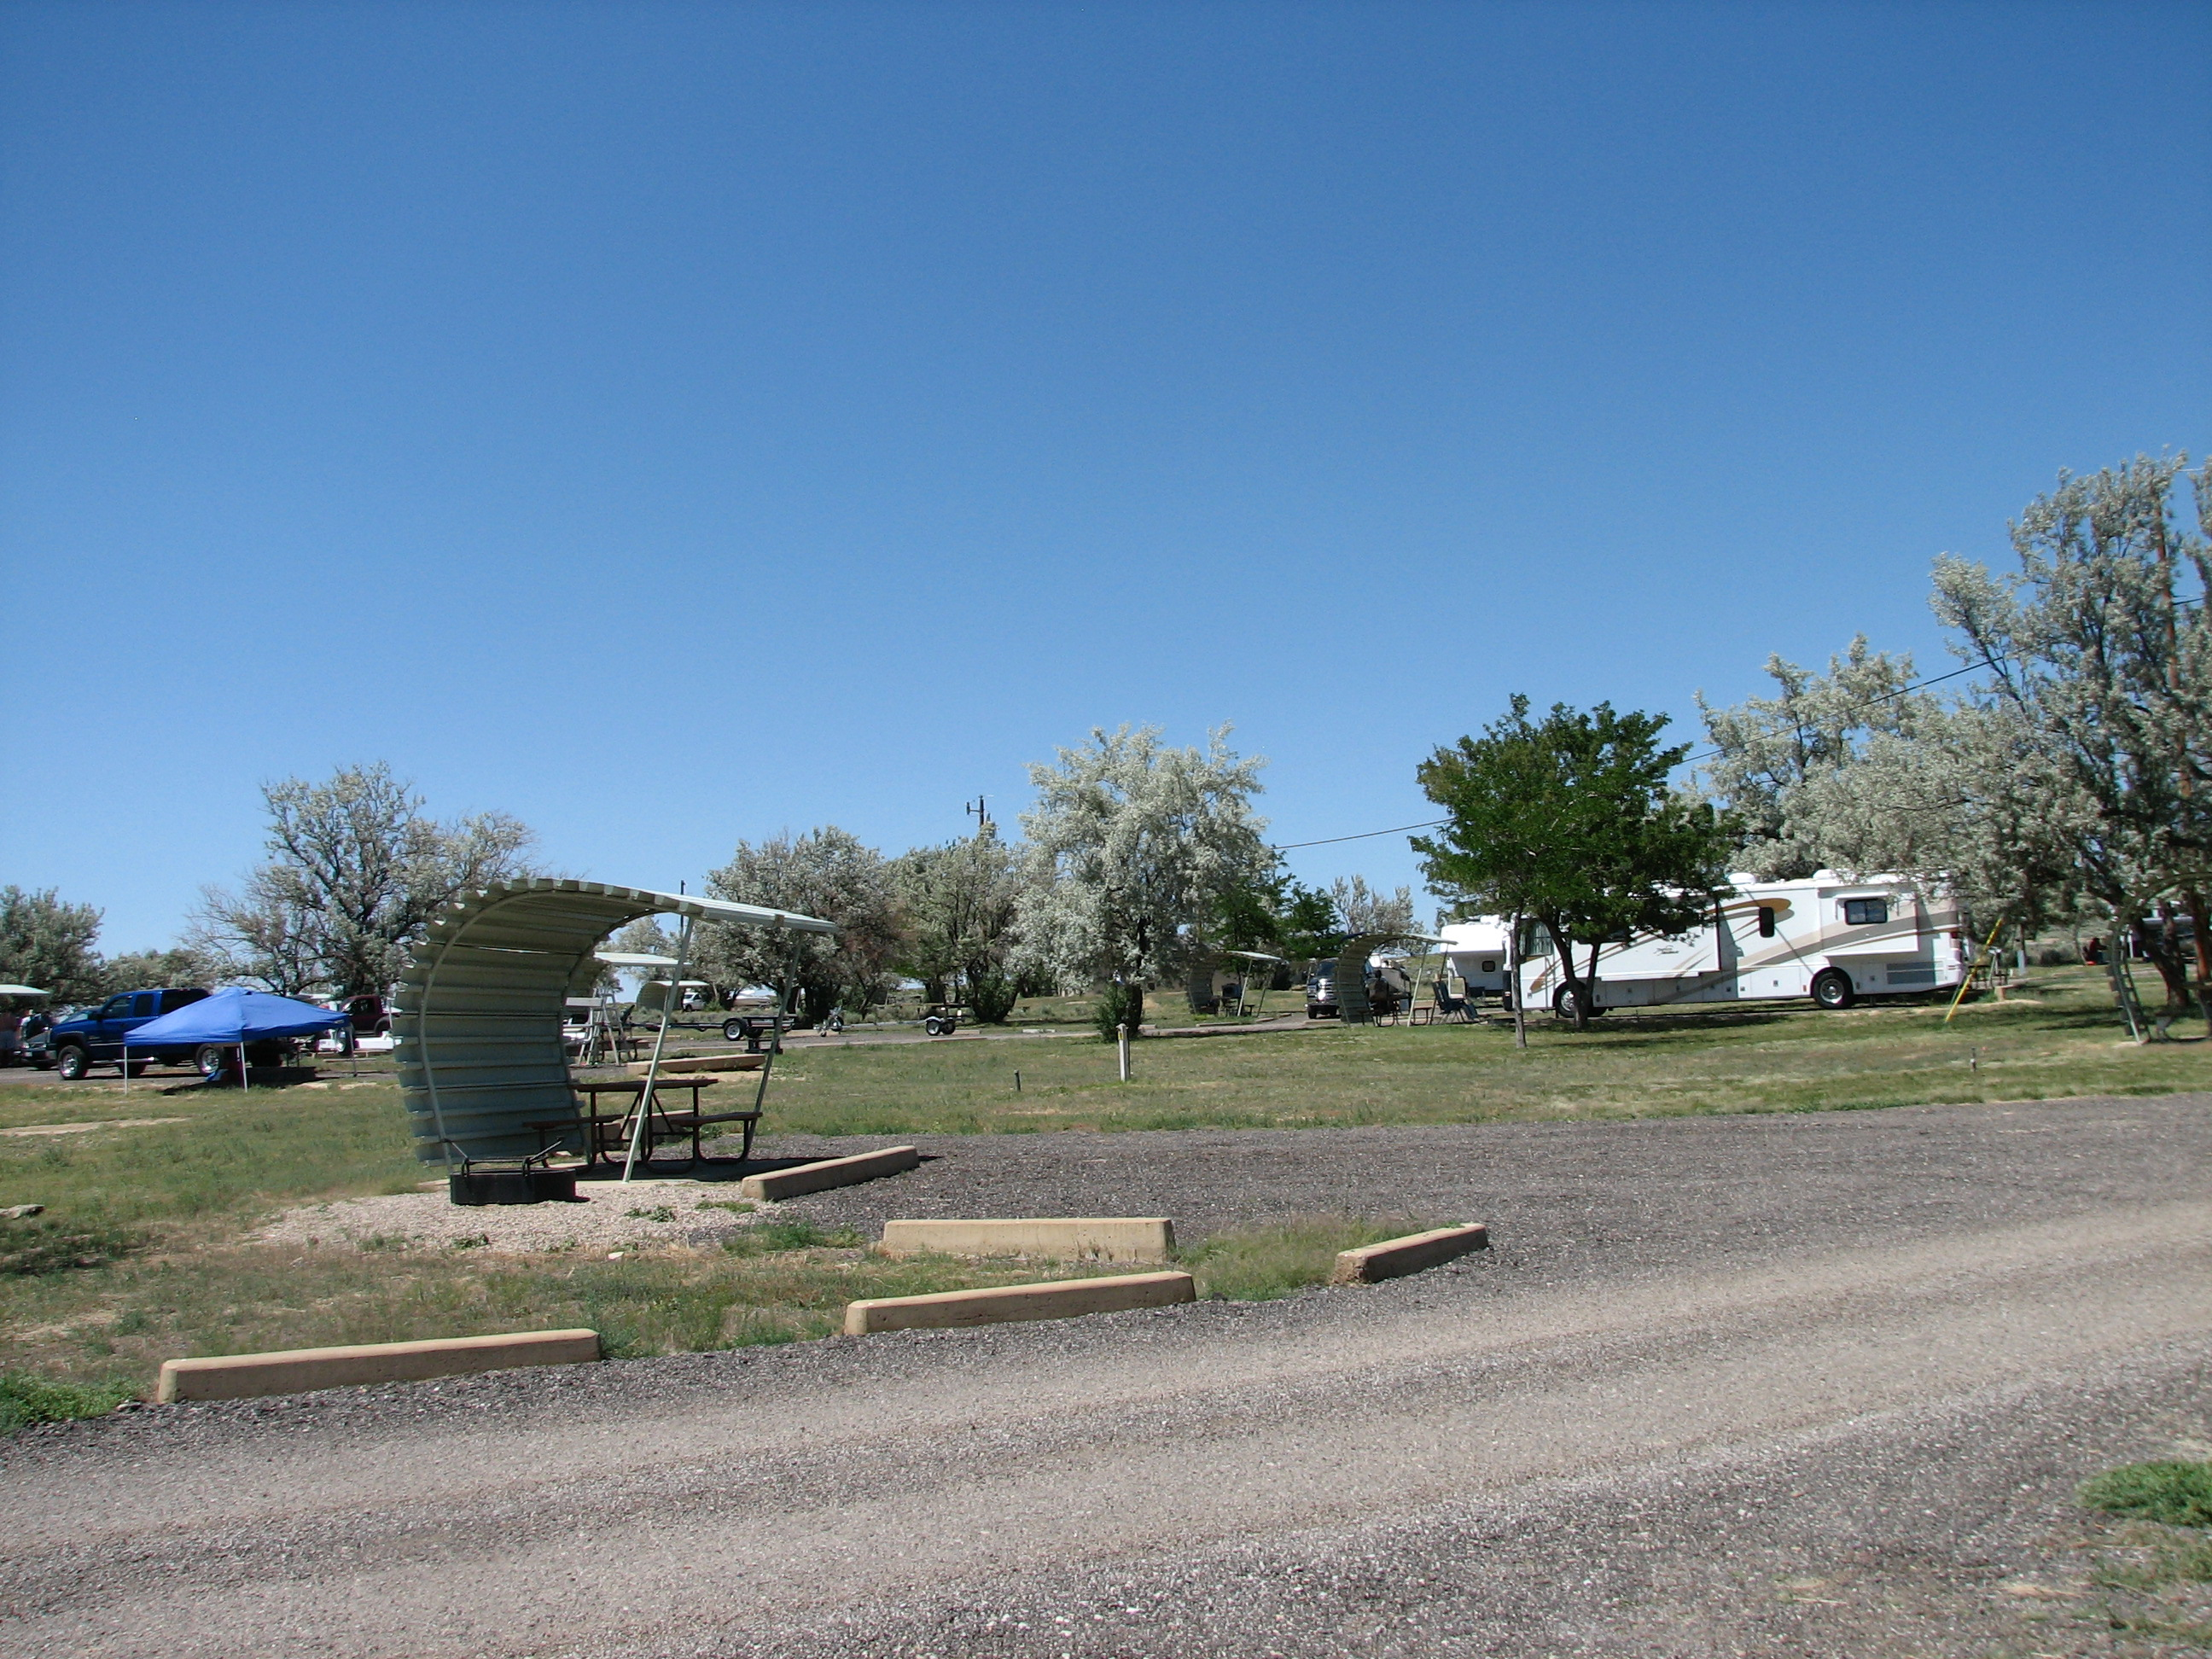 Photo of a campsite at Buckboard Campground.